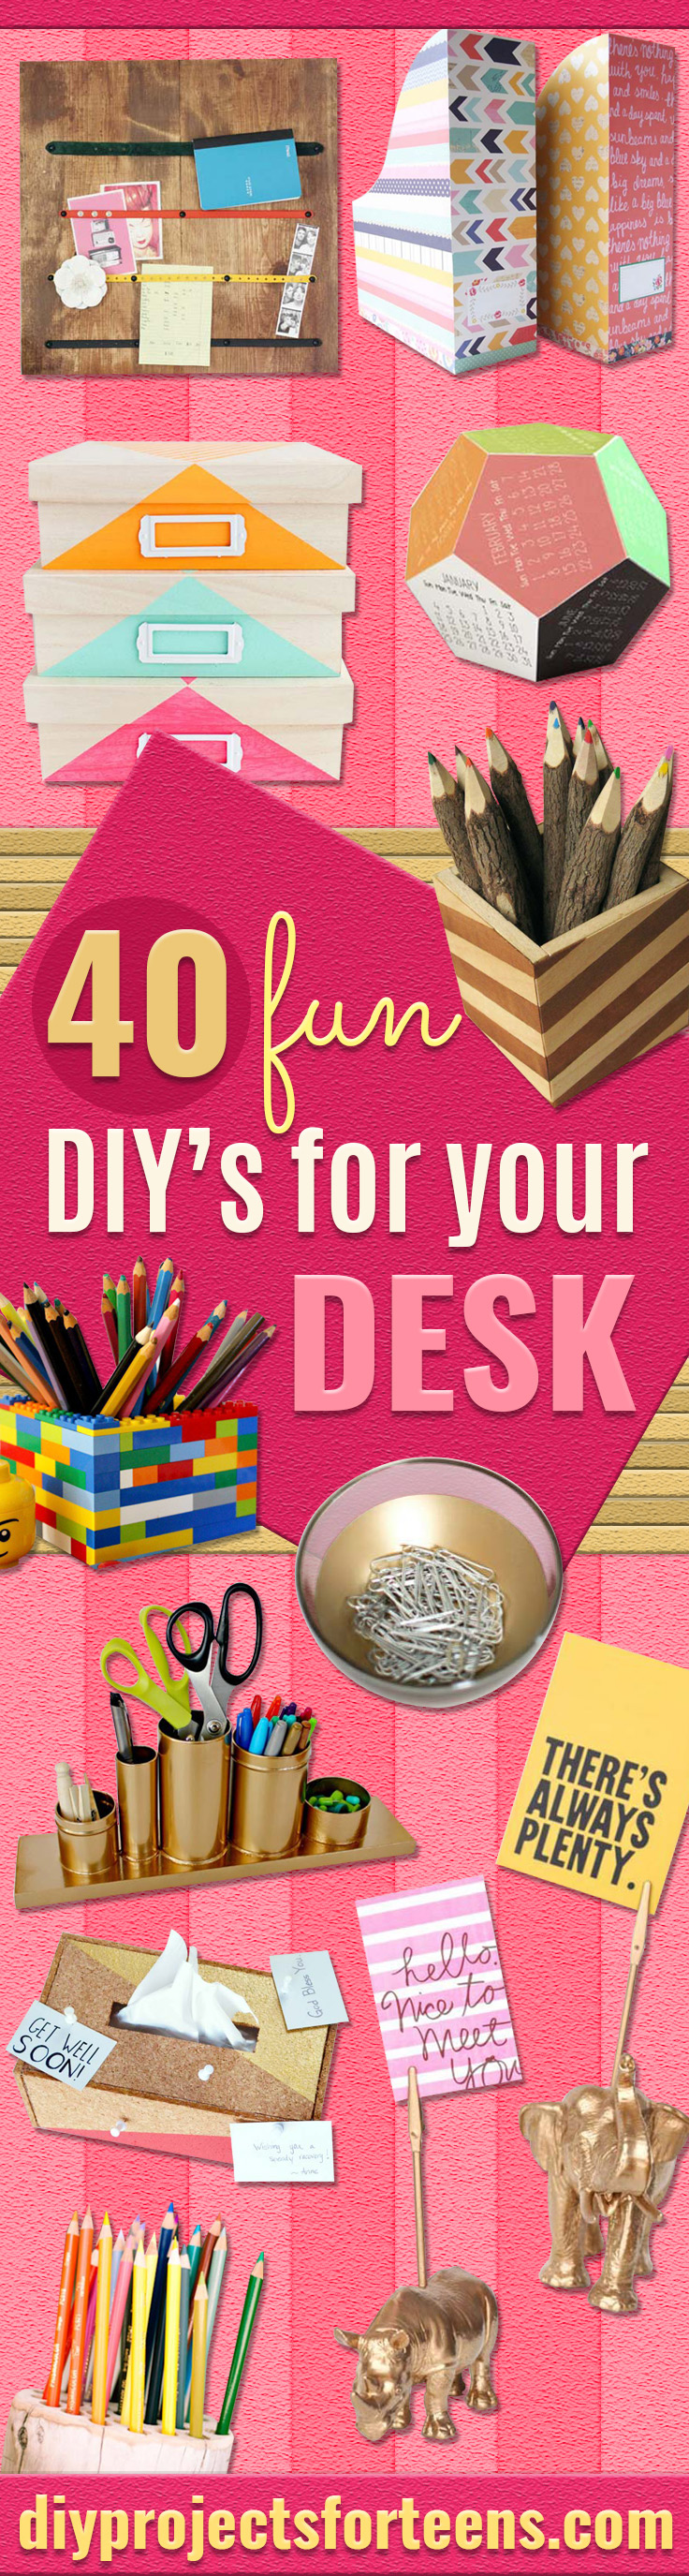 40 fun diys for your desk for Diy crafts with things around the house